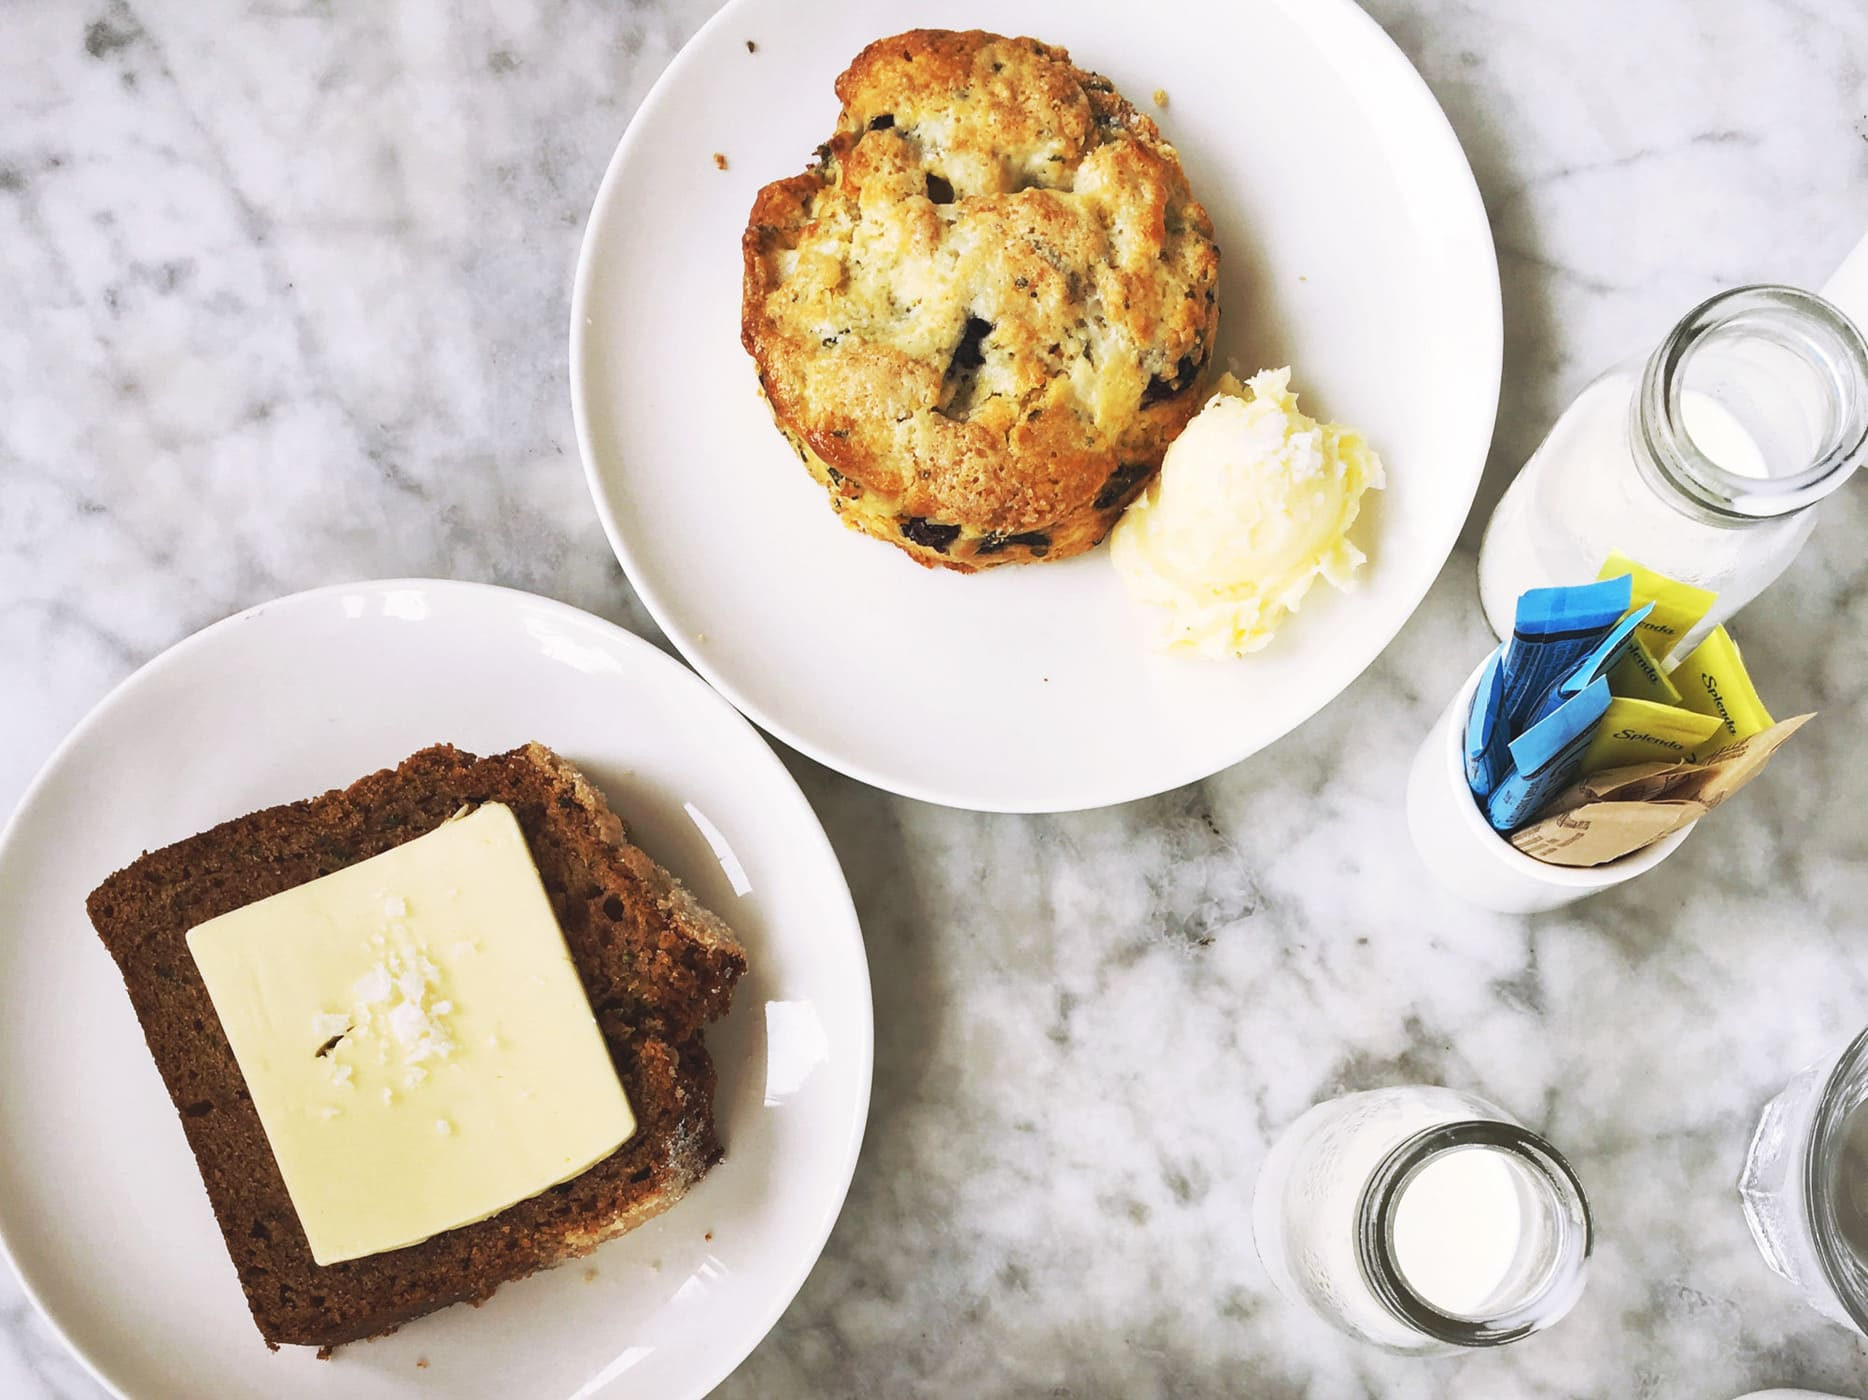 Zucchini bread and lemon blueberry scone at Launderette in Austin, Texas.